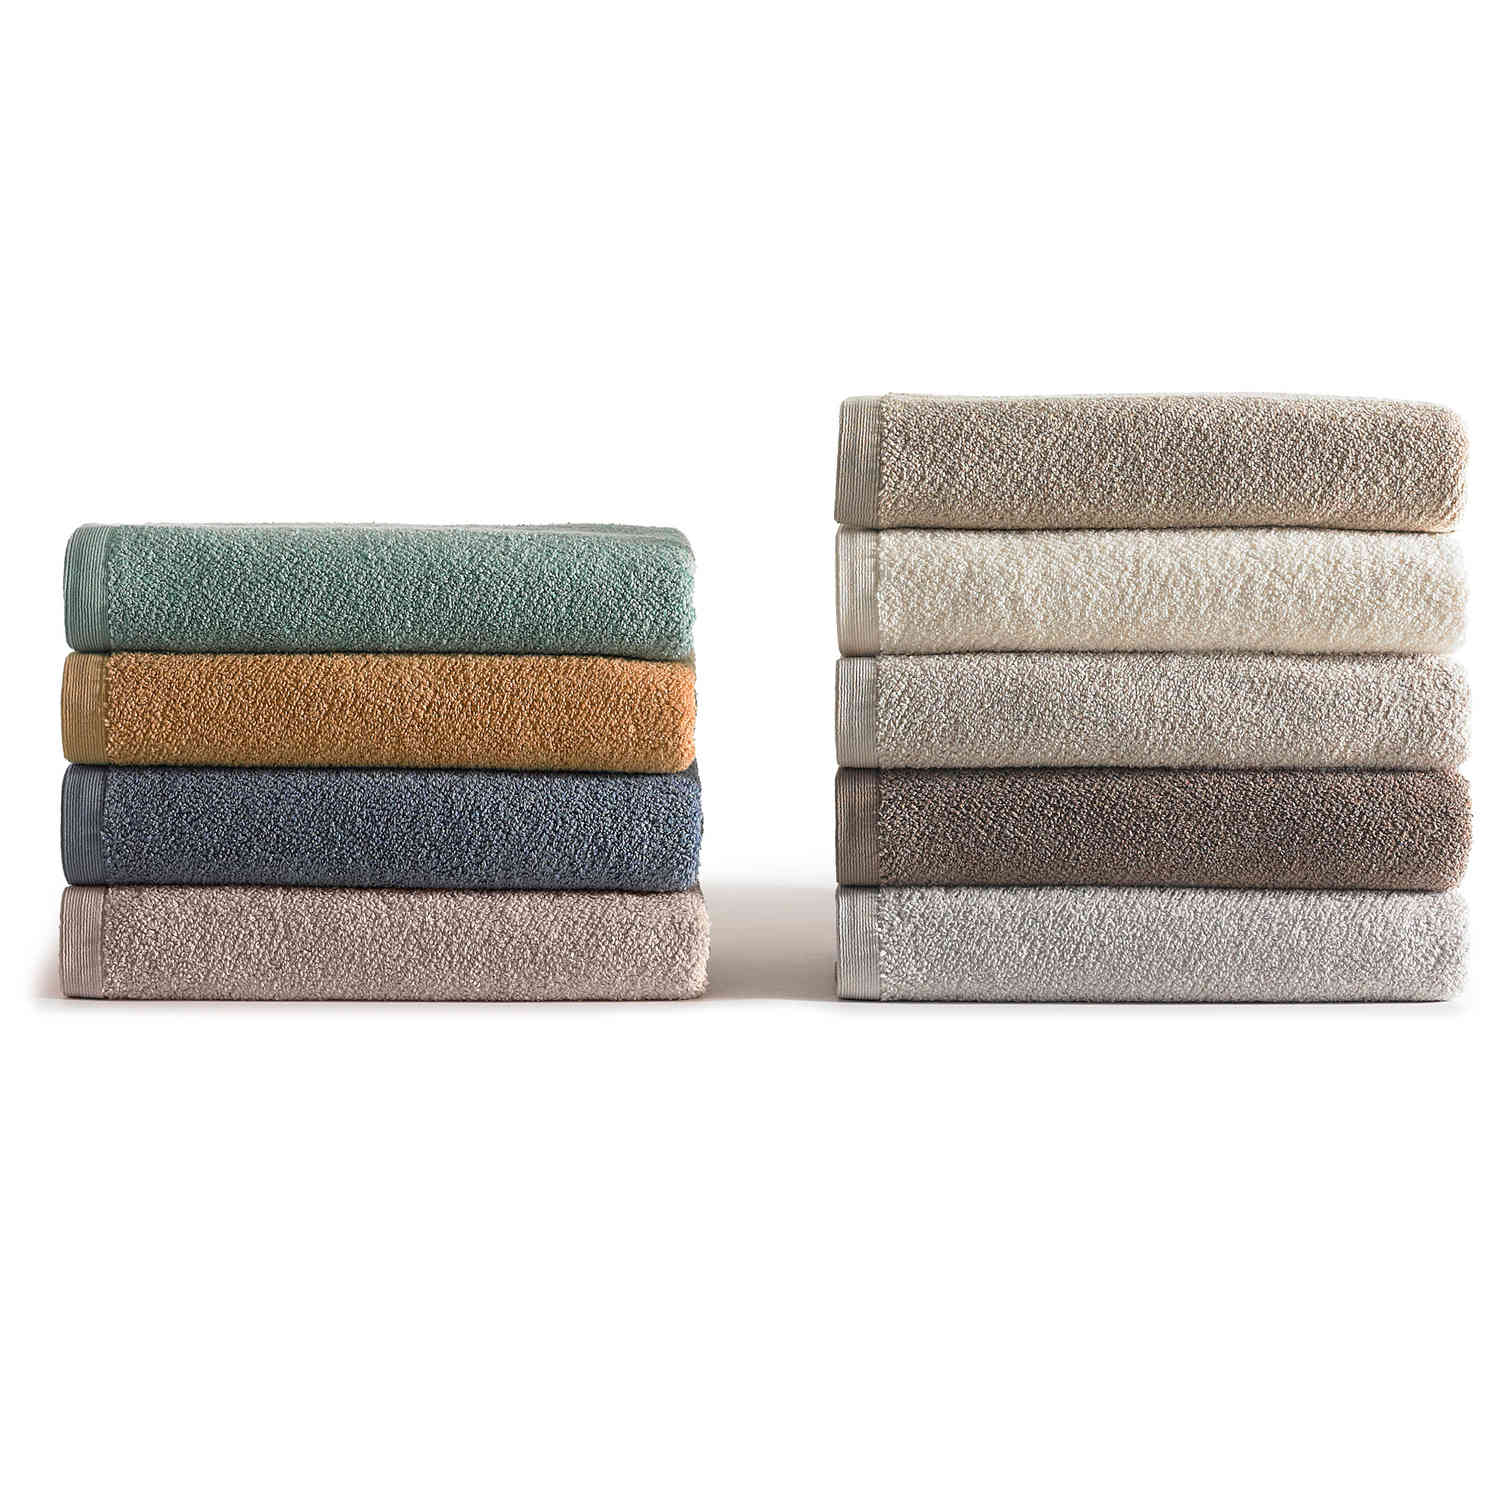 cheap ideas rug your home best flooring rugged drug plume bathroom rugs contemporary peacock by maniac wool for decor area